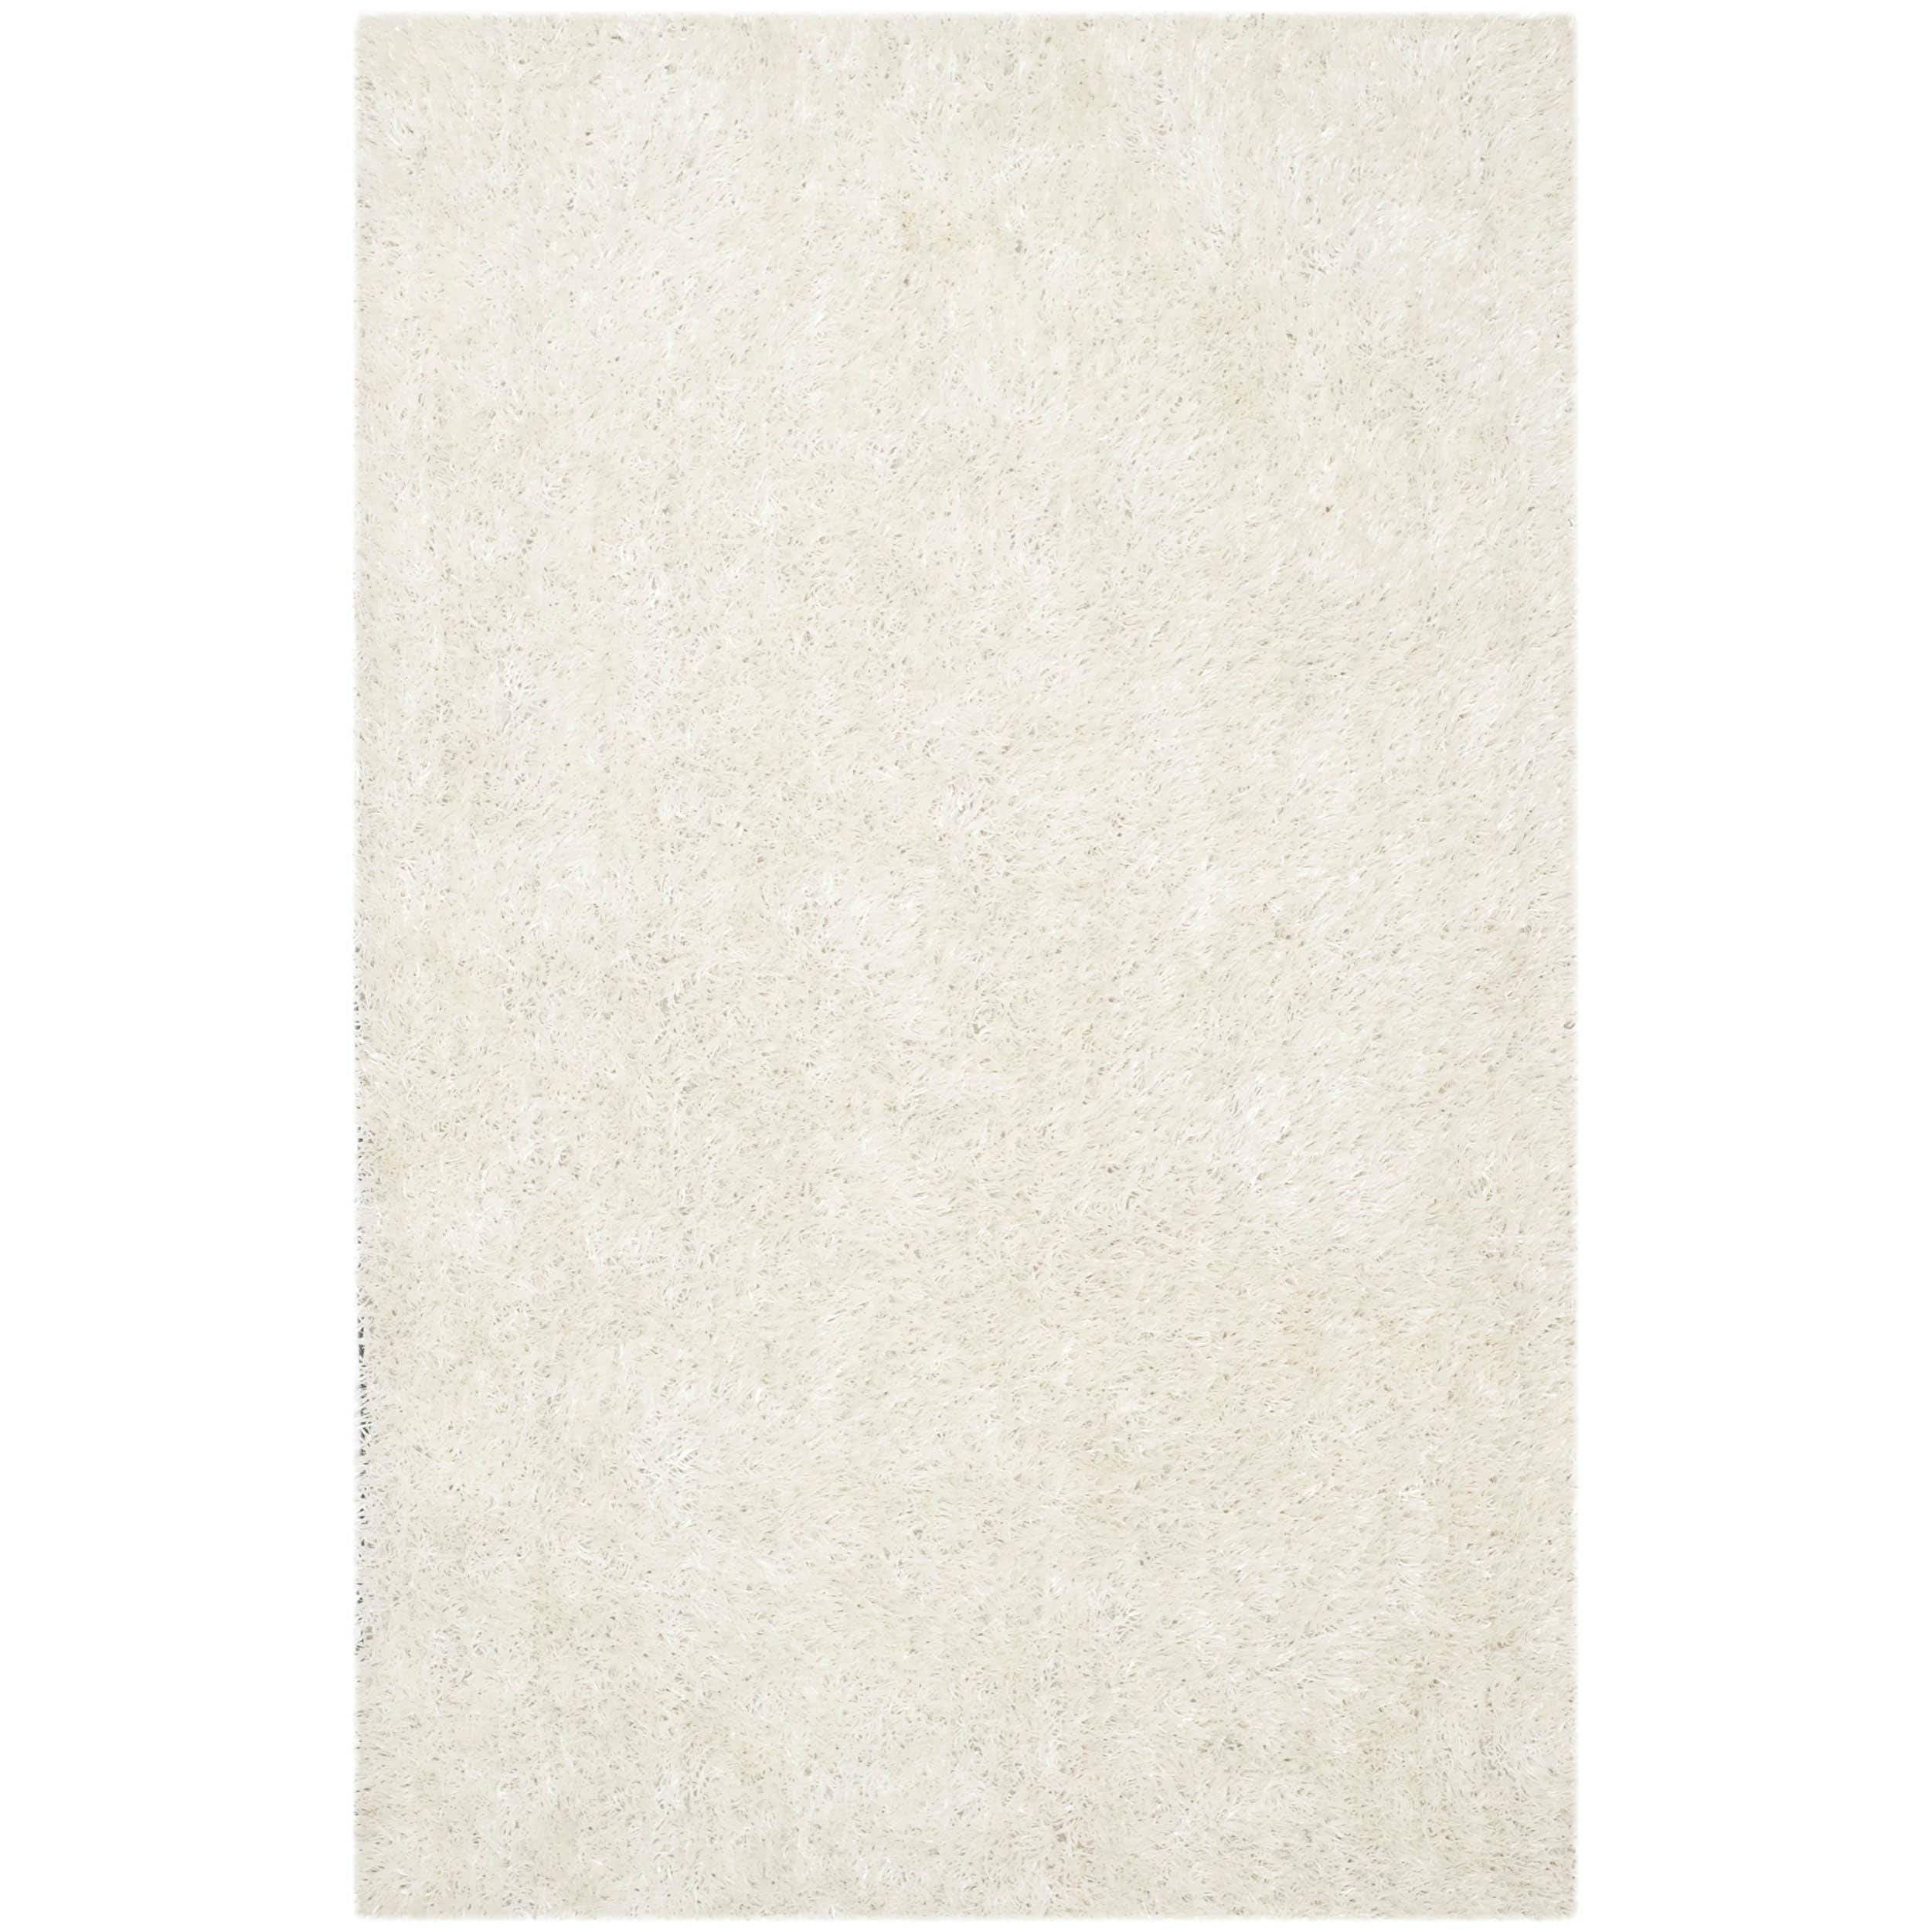 Safavieh Handmade New Orleans Shag Off White Textured Polyester Area Rug